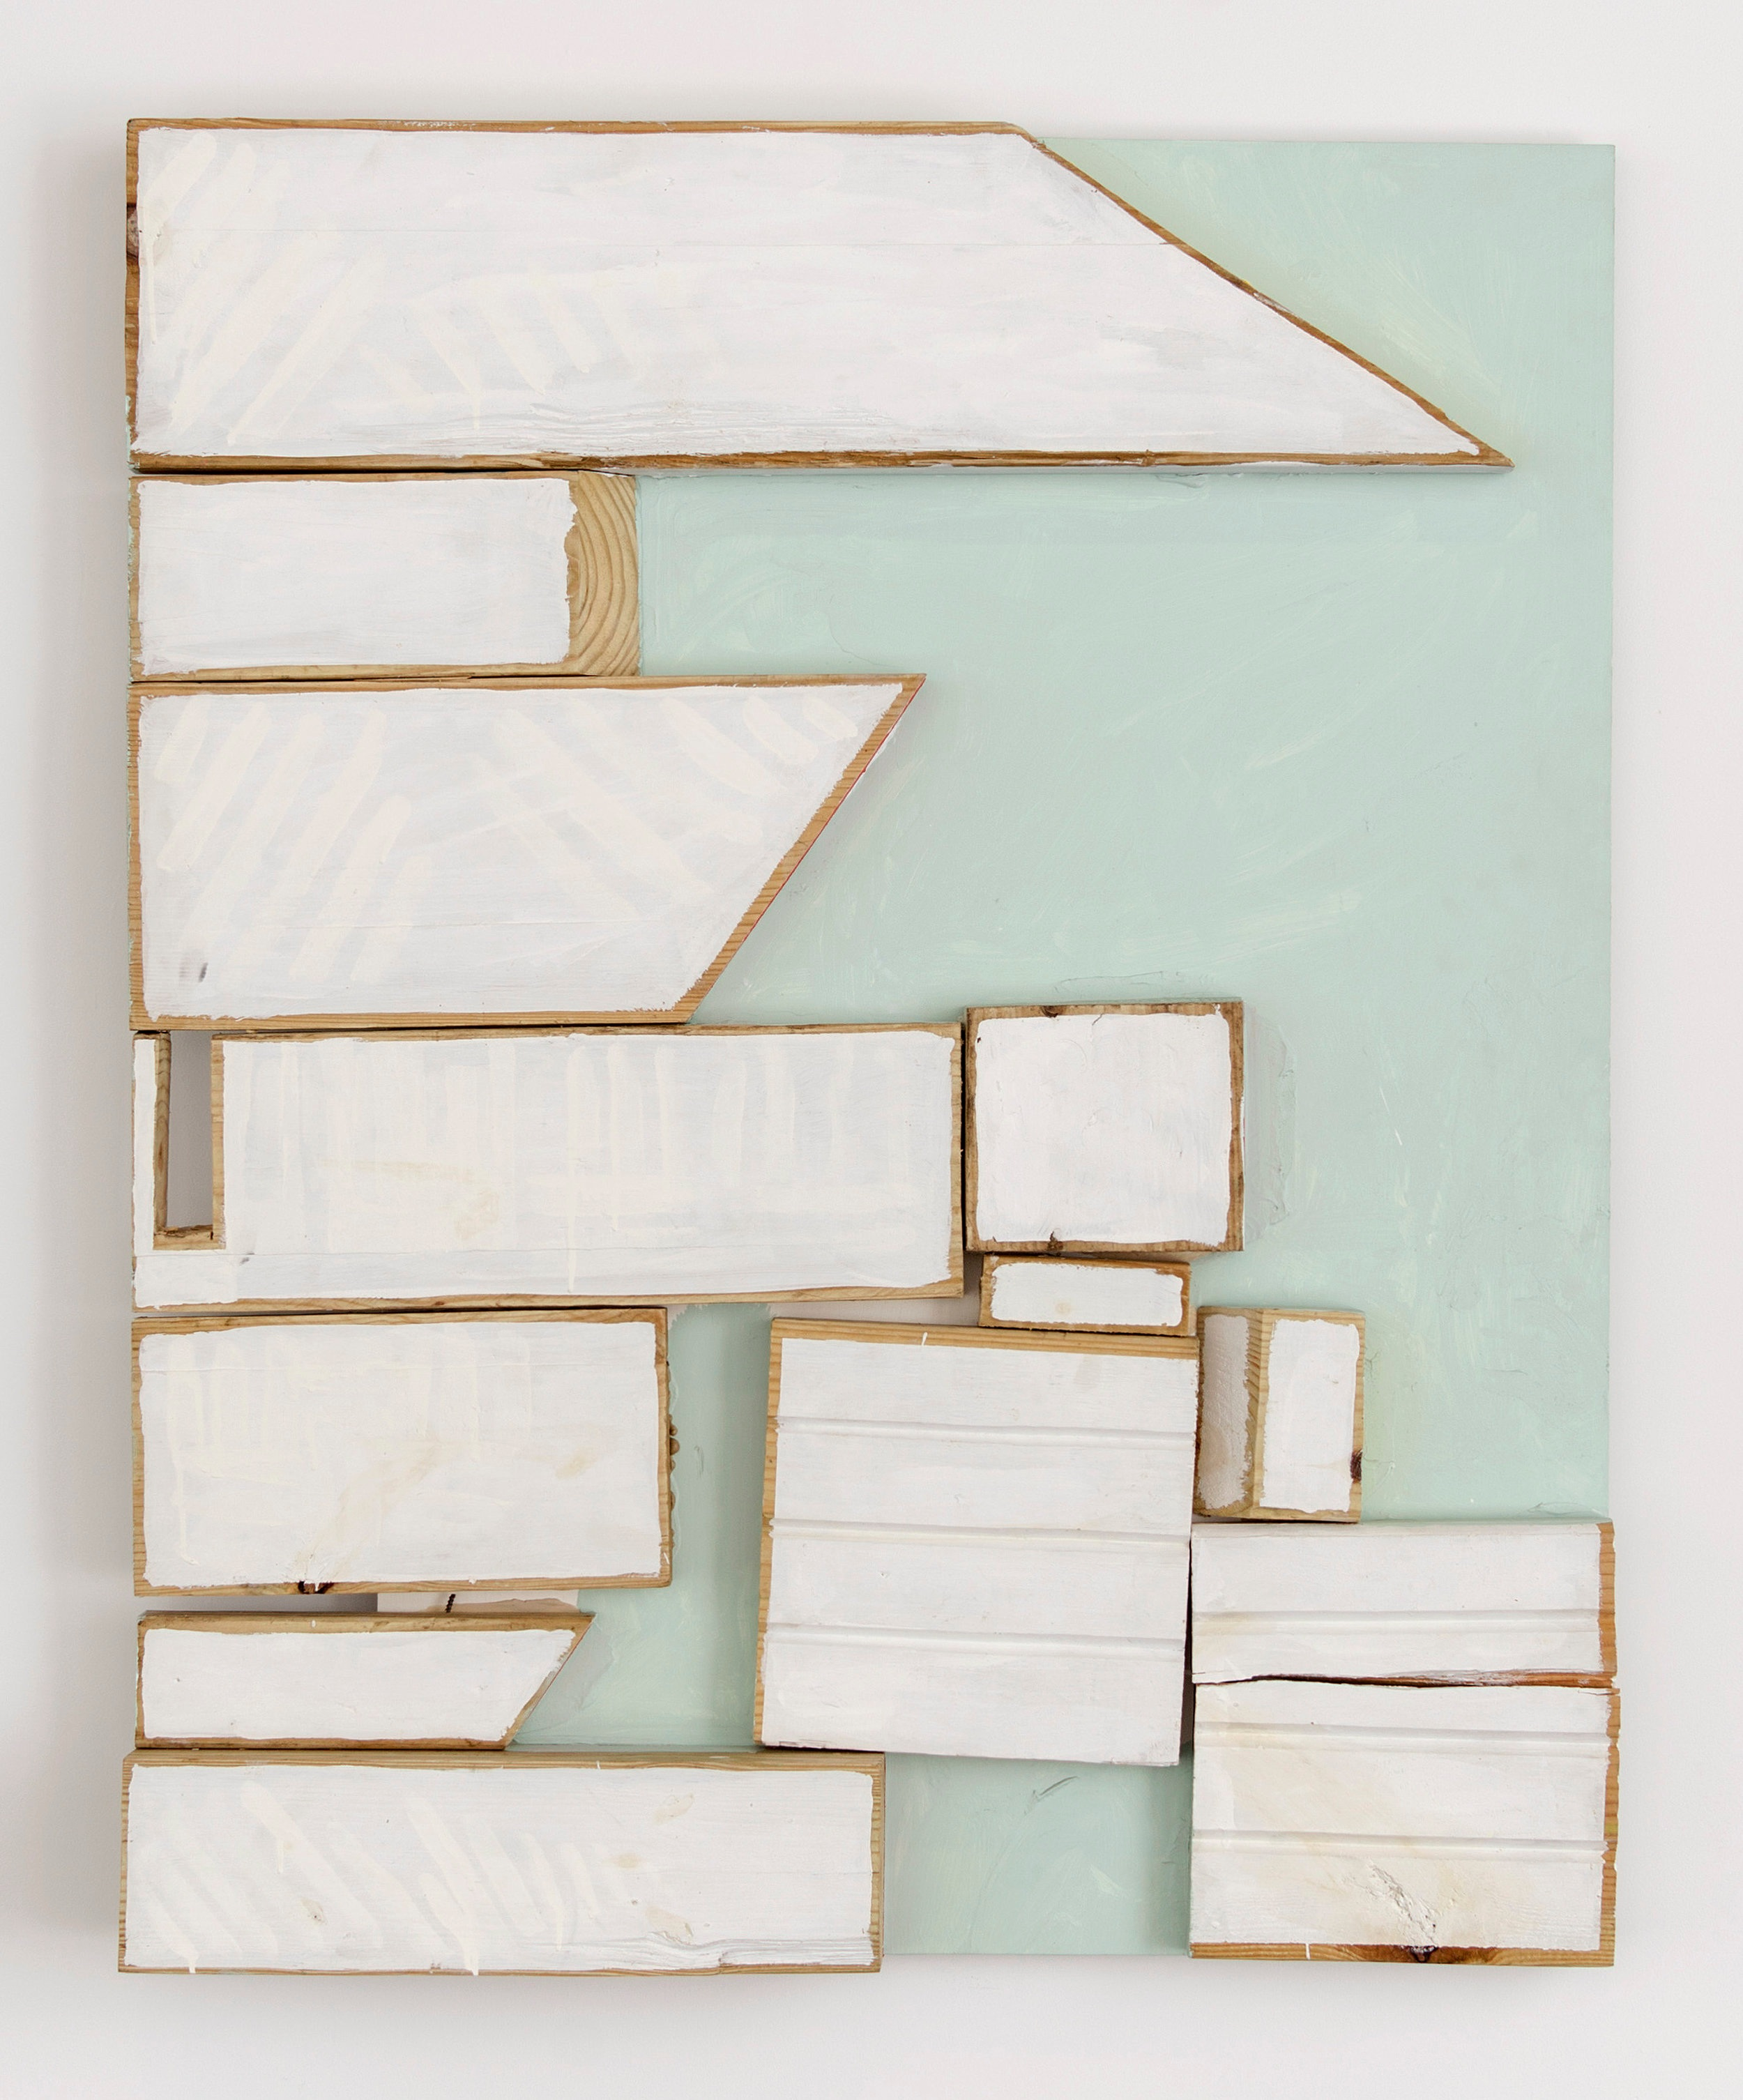 Hollywood , 2013  Acrylic and shellac on wood  48 x 38 1/4 x 4 3/4 inches